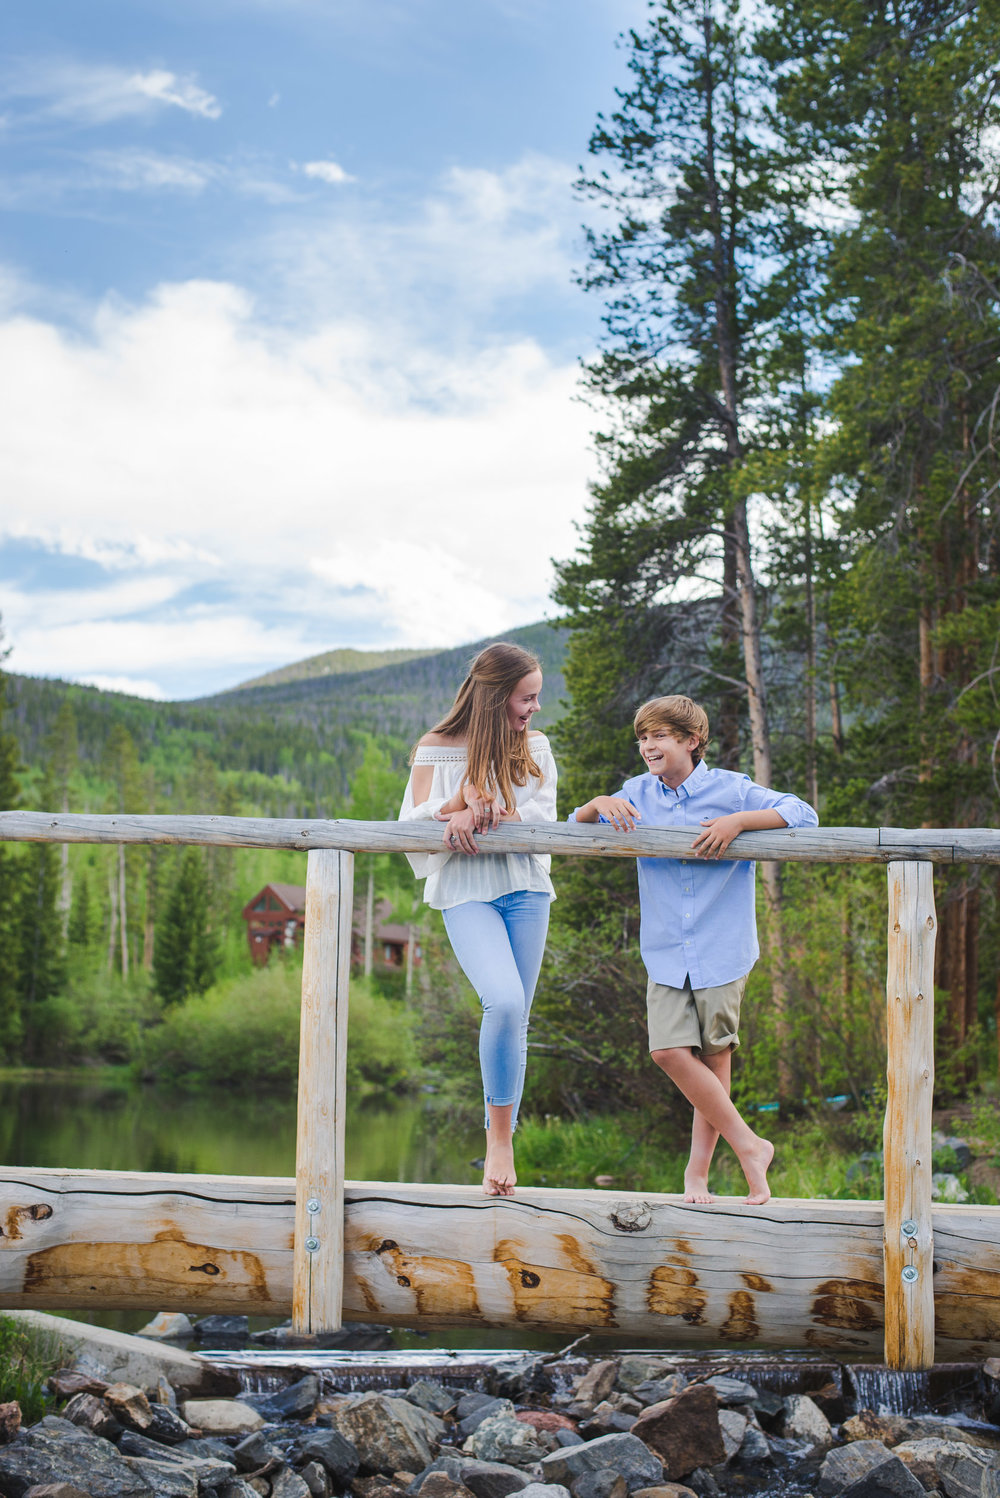 three generations of family on vacation in the mountains of Frisco, Colorado | Keeping Composure Photography | Colorado family photographer